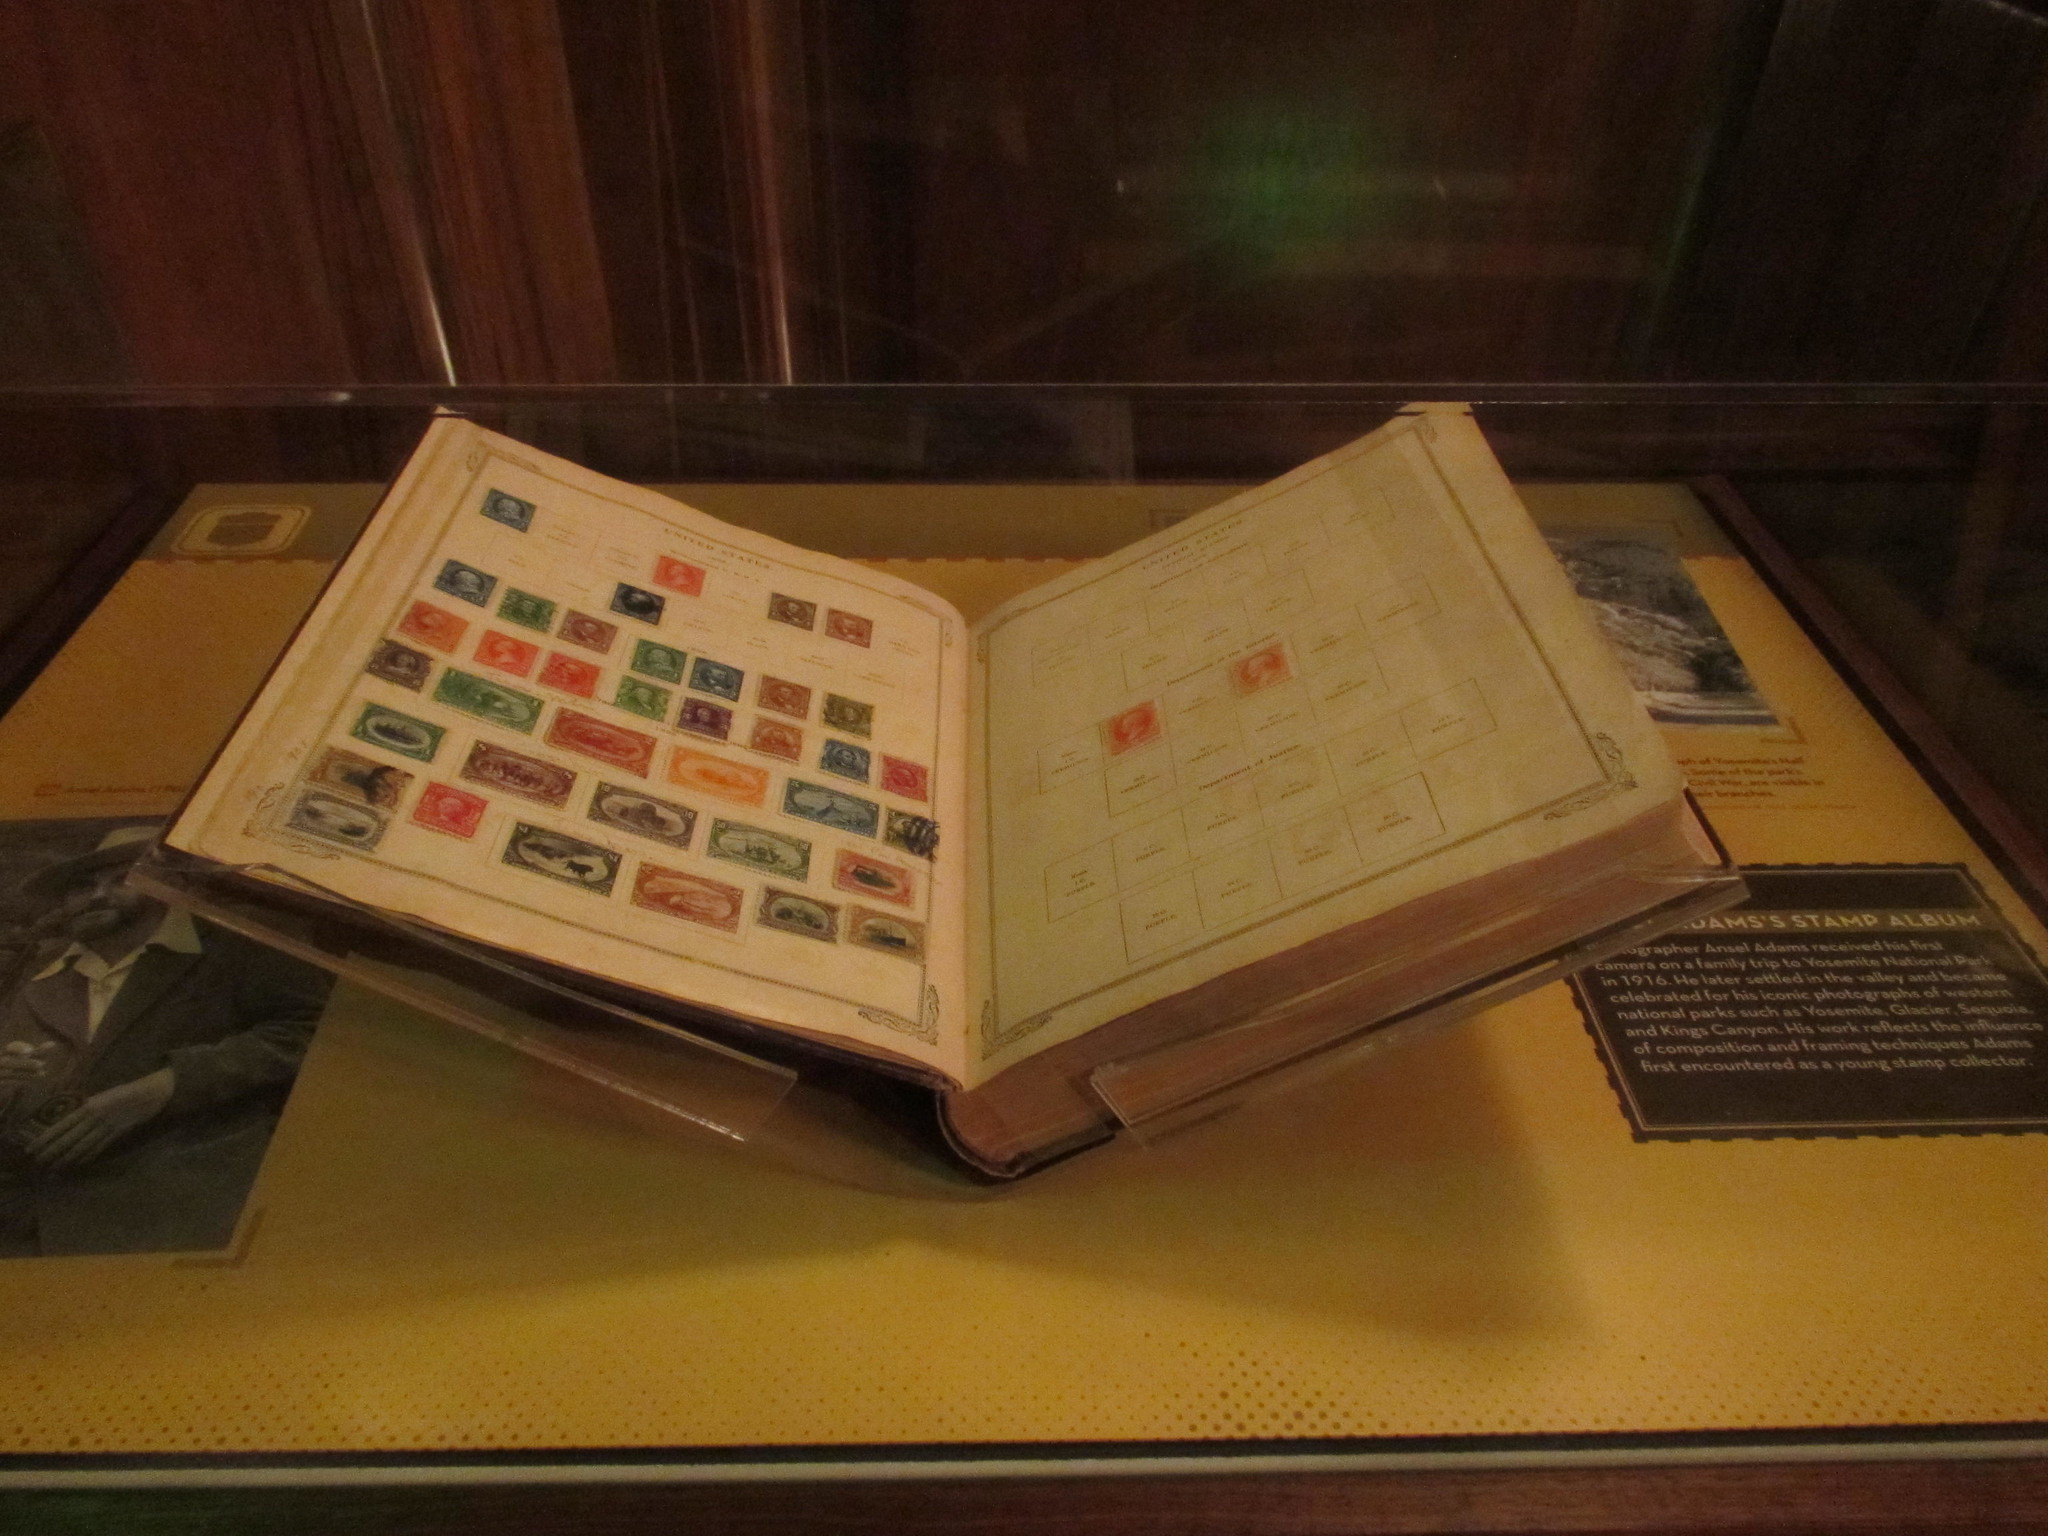 A stamp album owned by Ansel Adams is on display at the Smithsonian National Postal Museum in Washington, D.C. Photo taken on June 11, 2016..